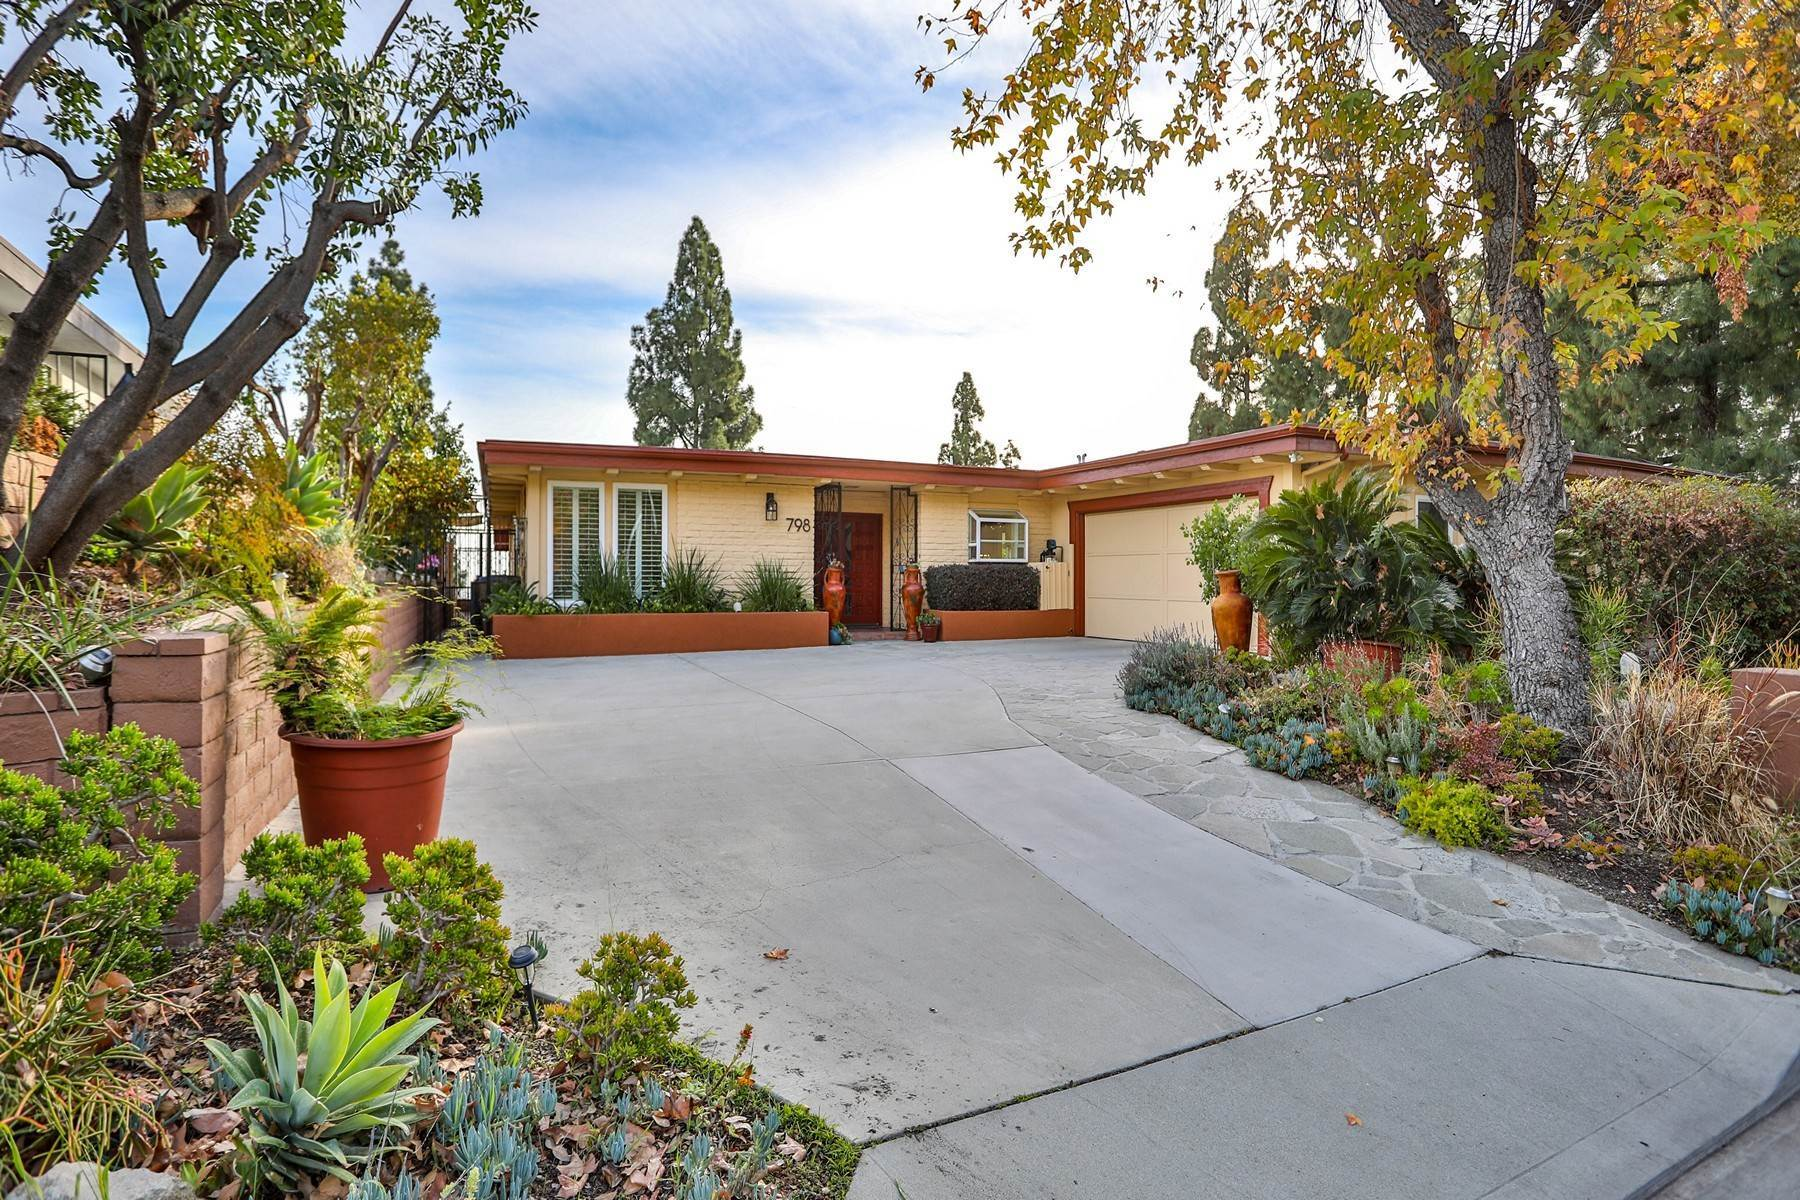 Single Family Homes for Sale at 798 Via Santo Tomas, Claremont, CA 91711 798 Via Santo Tomas Claremont, California 91711 United States